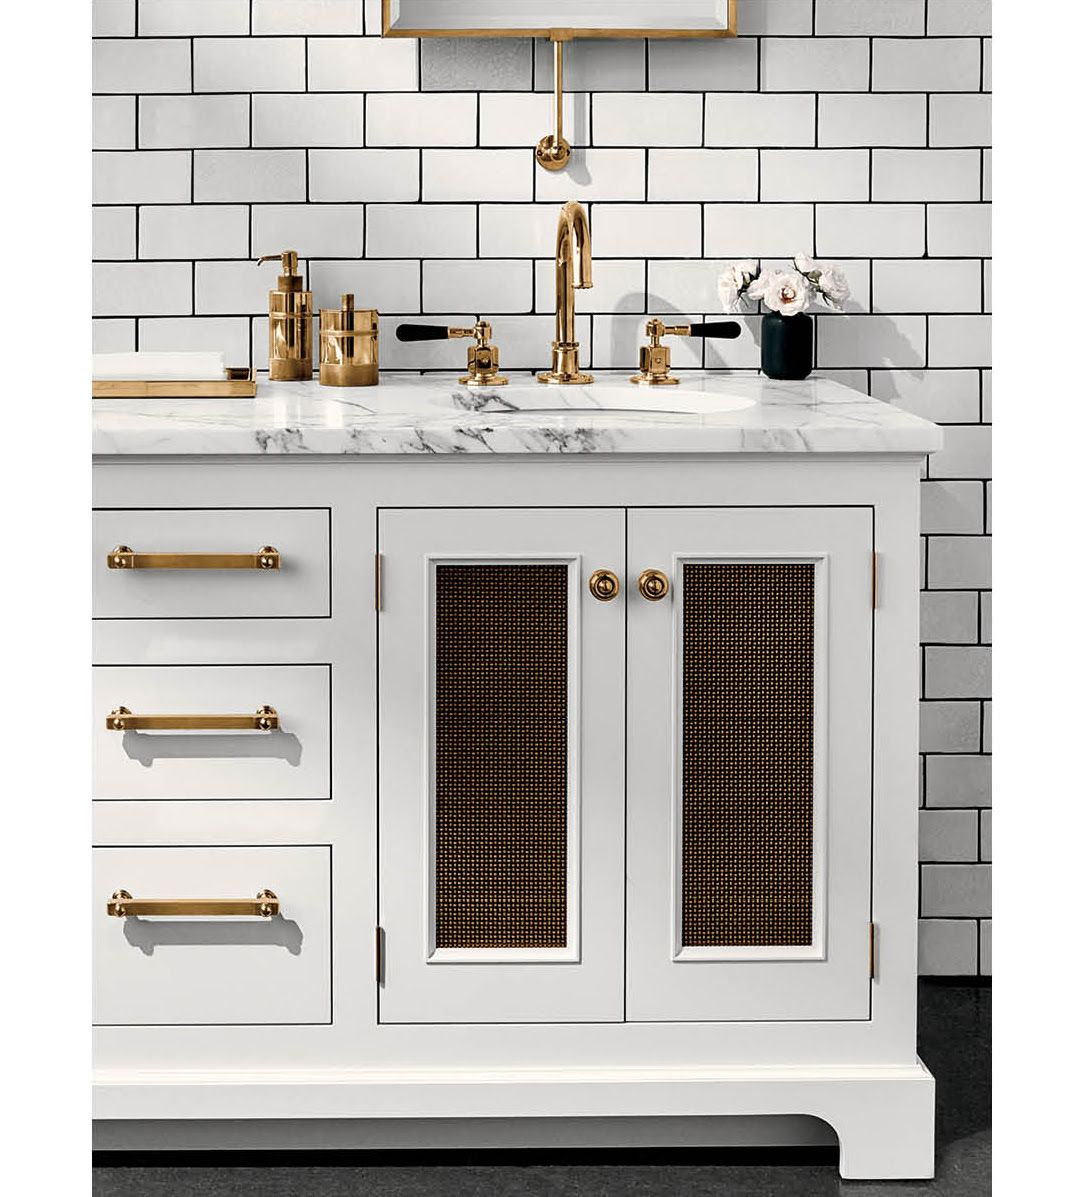 Belden Cabinetry With Mesh Inserts Traditional Bathroom Bathroom Design Small Bathroom